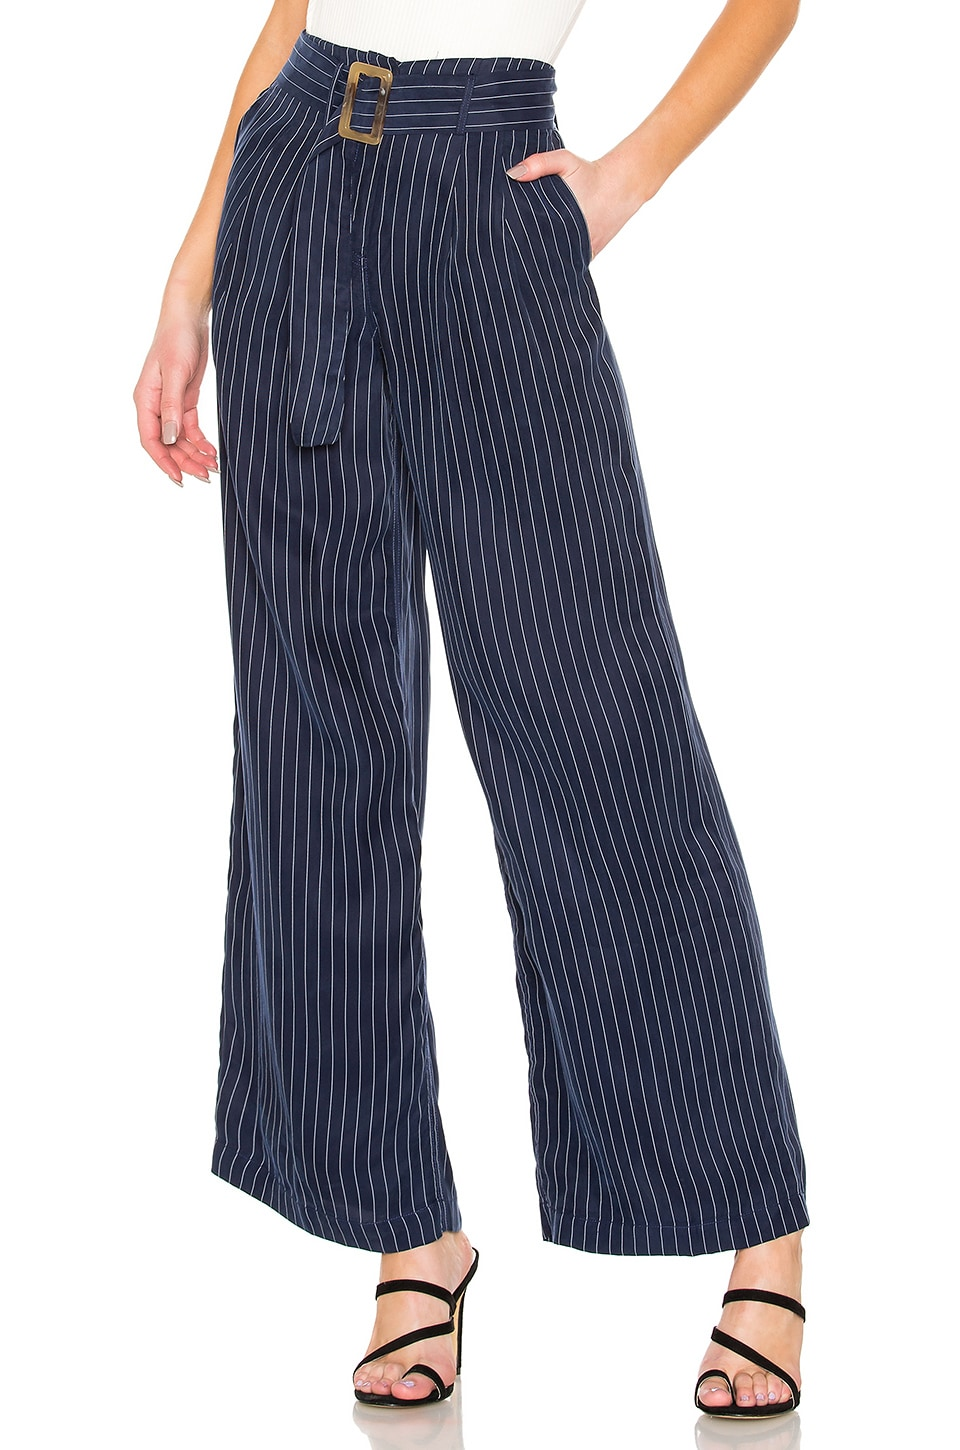 L'Academie The Sean Pant in Navy & White